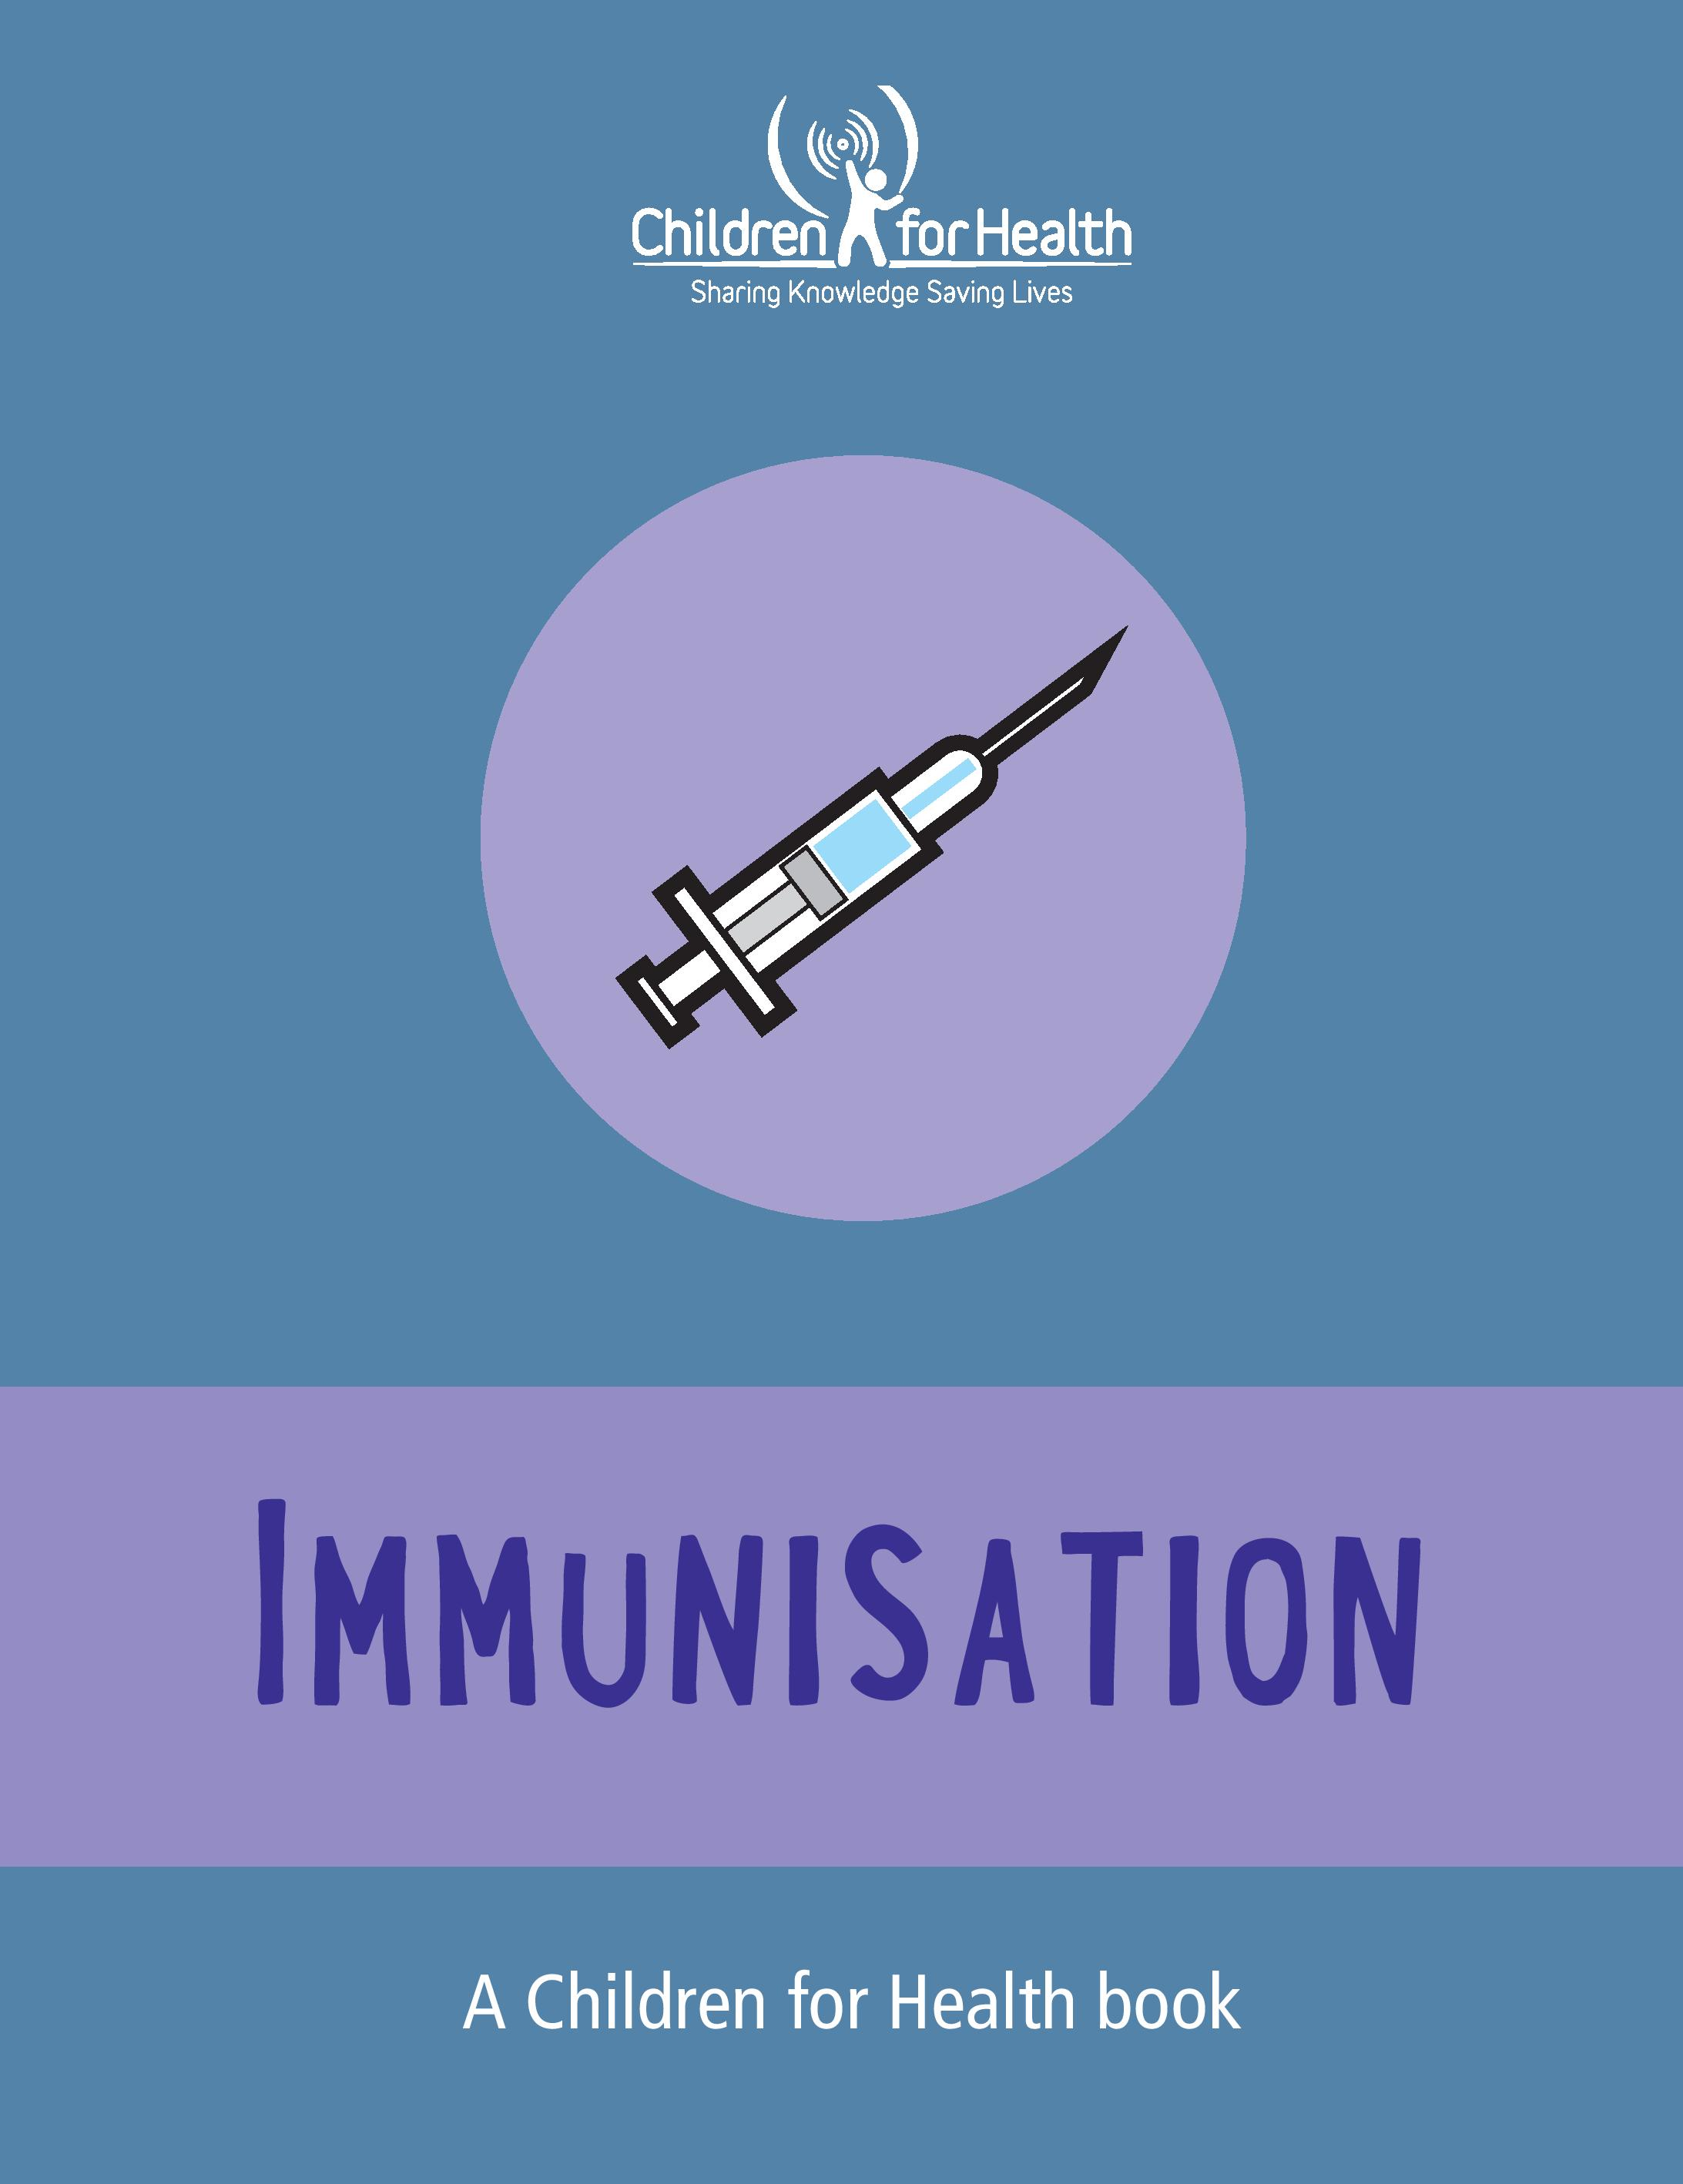 A blue book cover with a purple circle that has a syringe in it, below that a purple banner with blue text reads Immunisation.